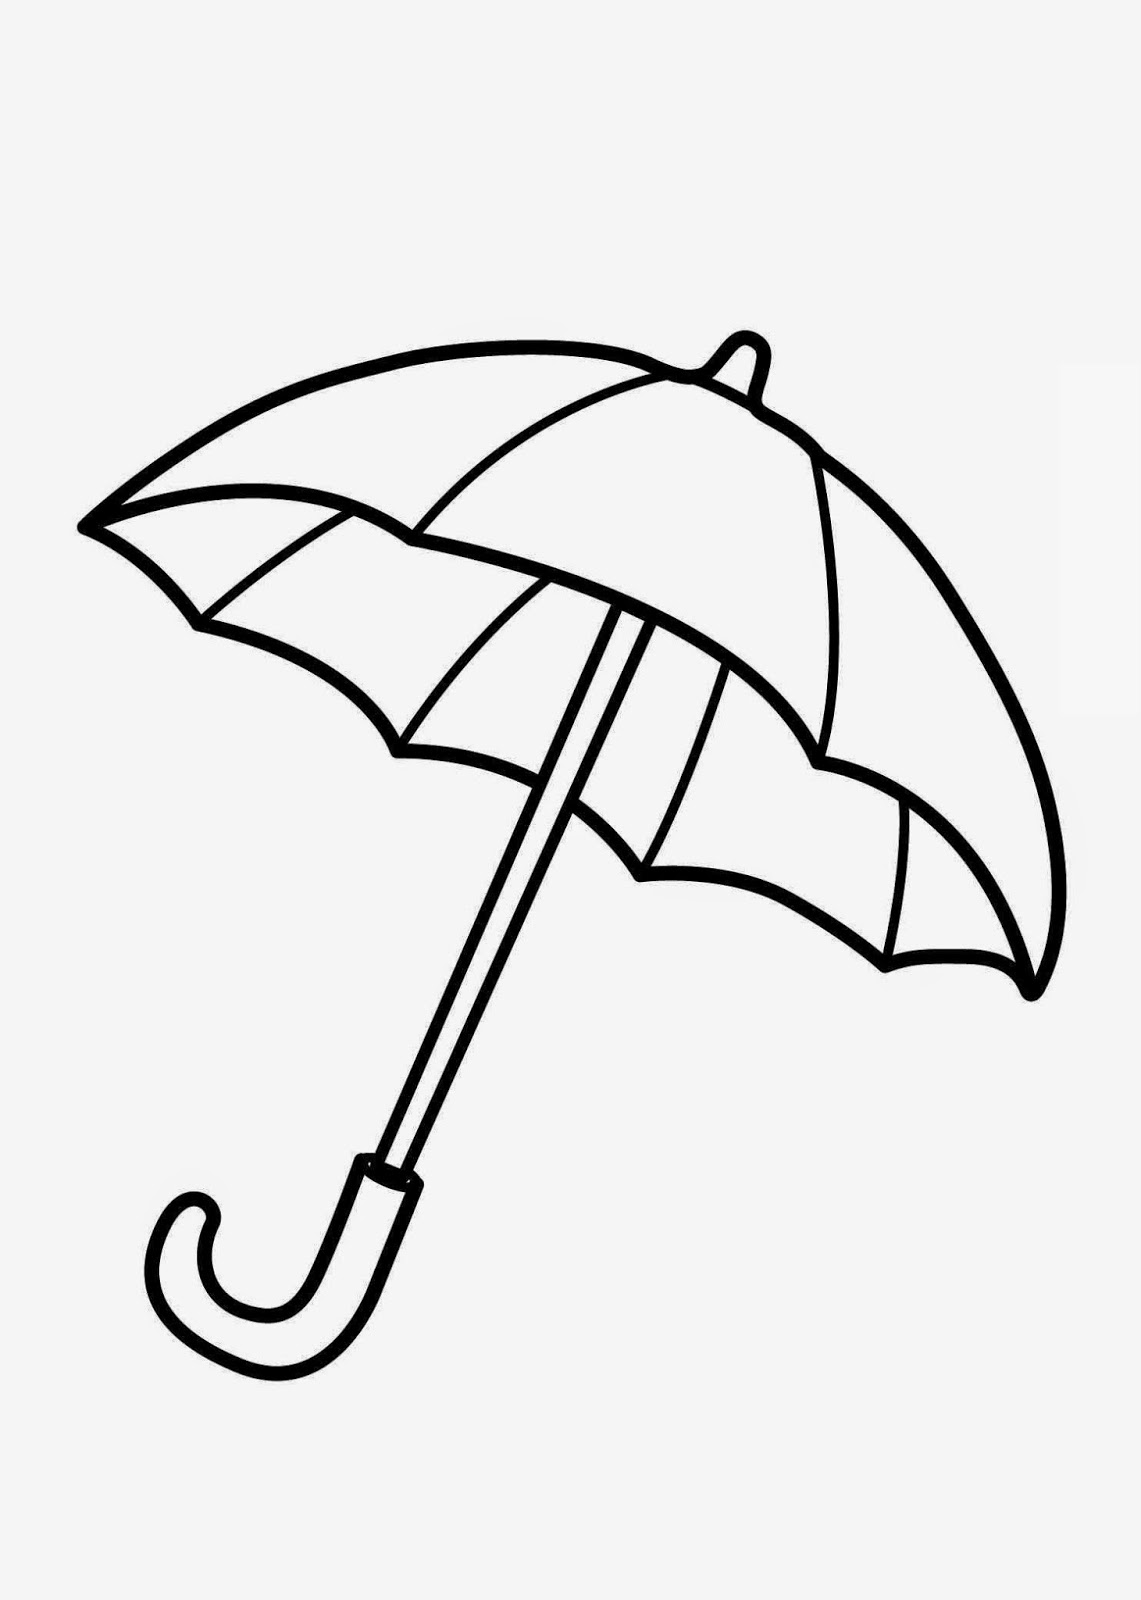 umbrella coloring pages | Free Printable Umbrella Coloring Pages